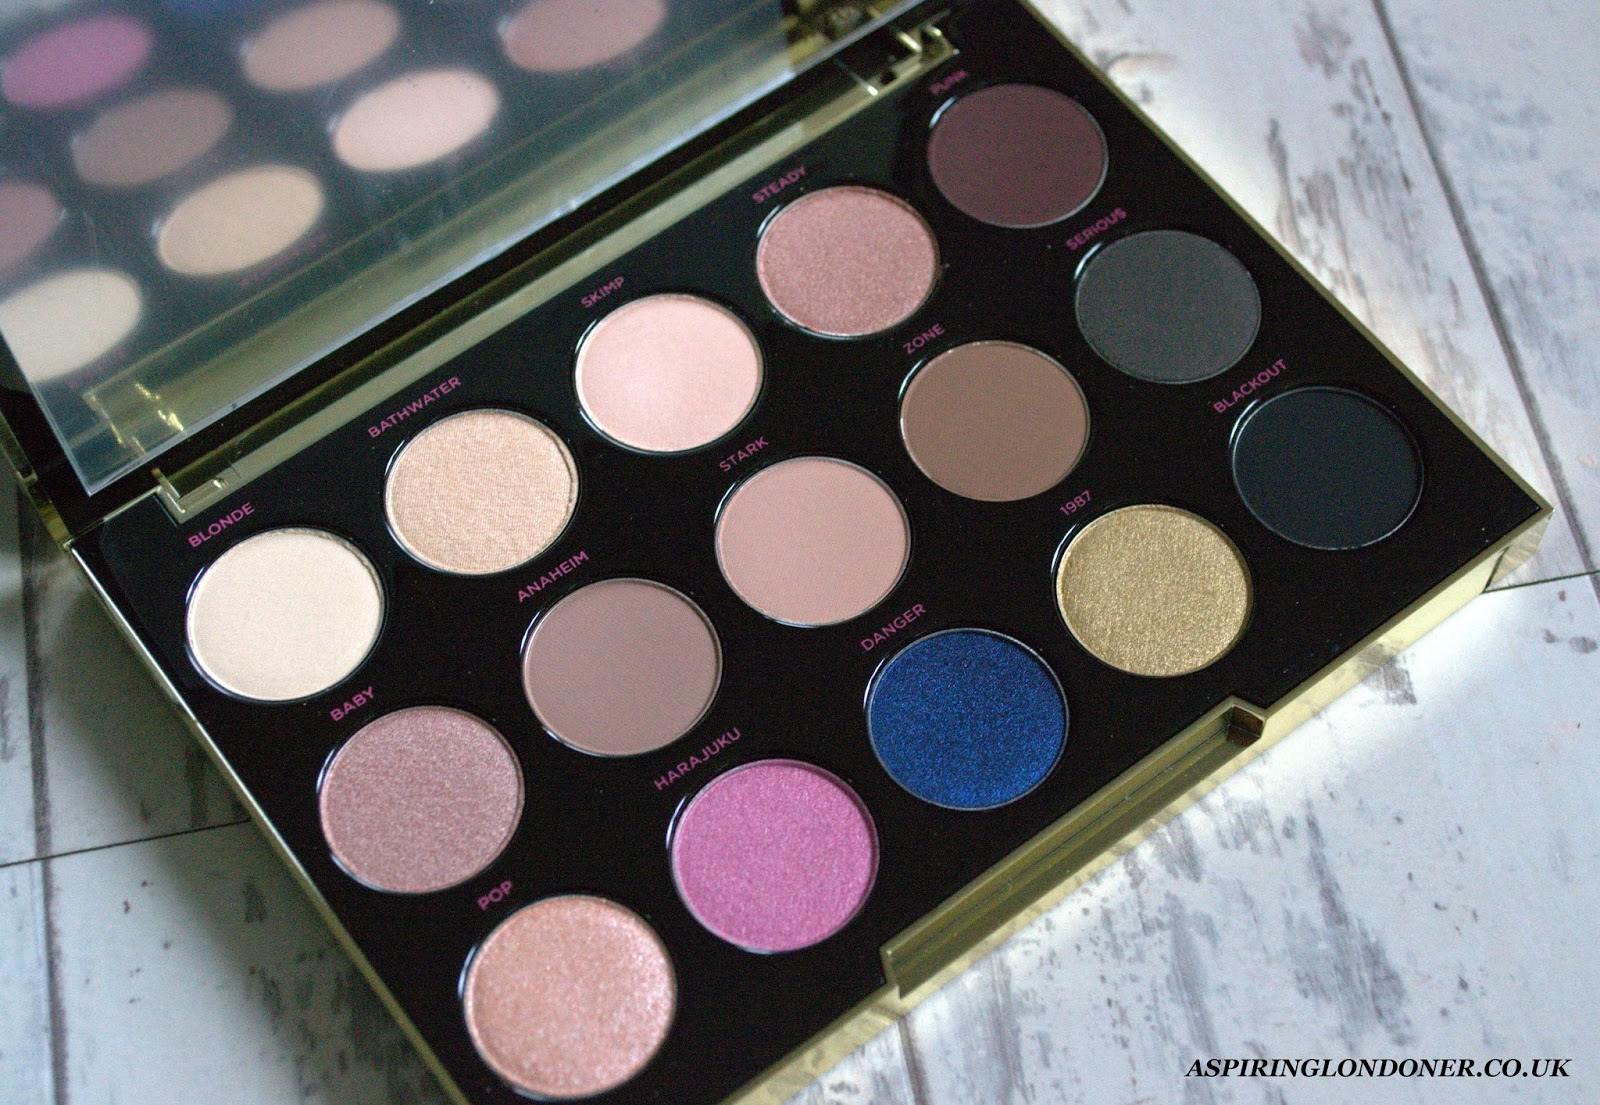 Urban Decay Gwen Stefani Eyeshadow Palette Review+Swatches - Aspiring Londoner